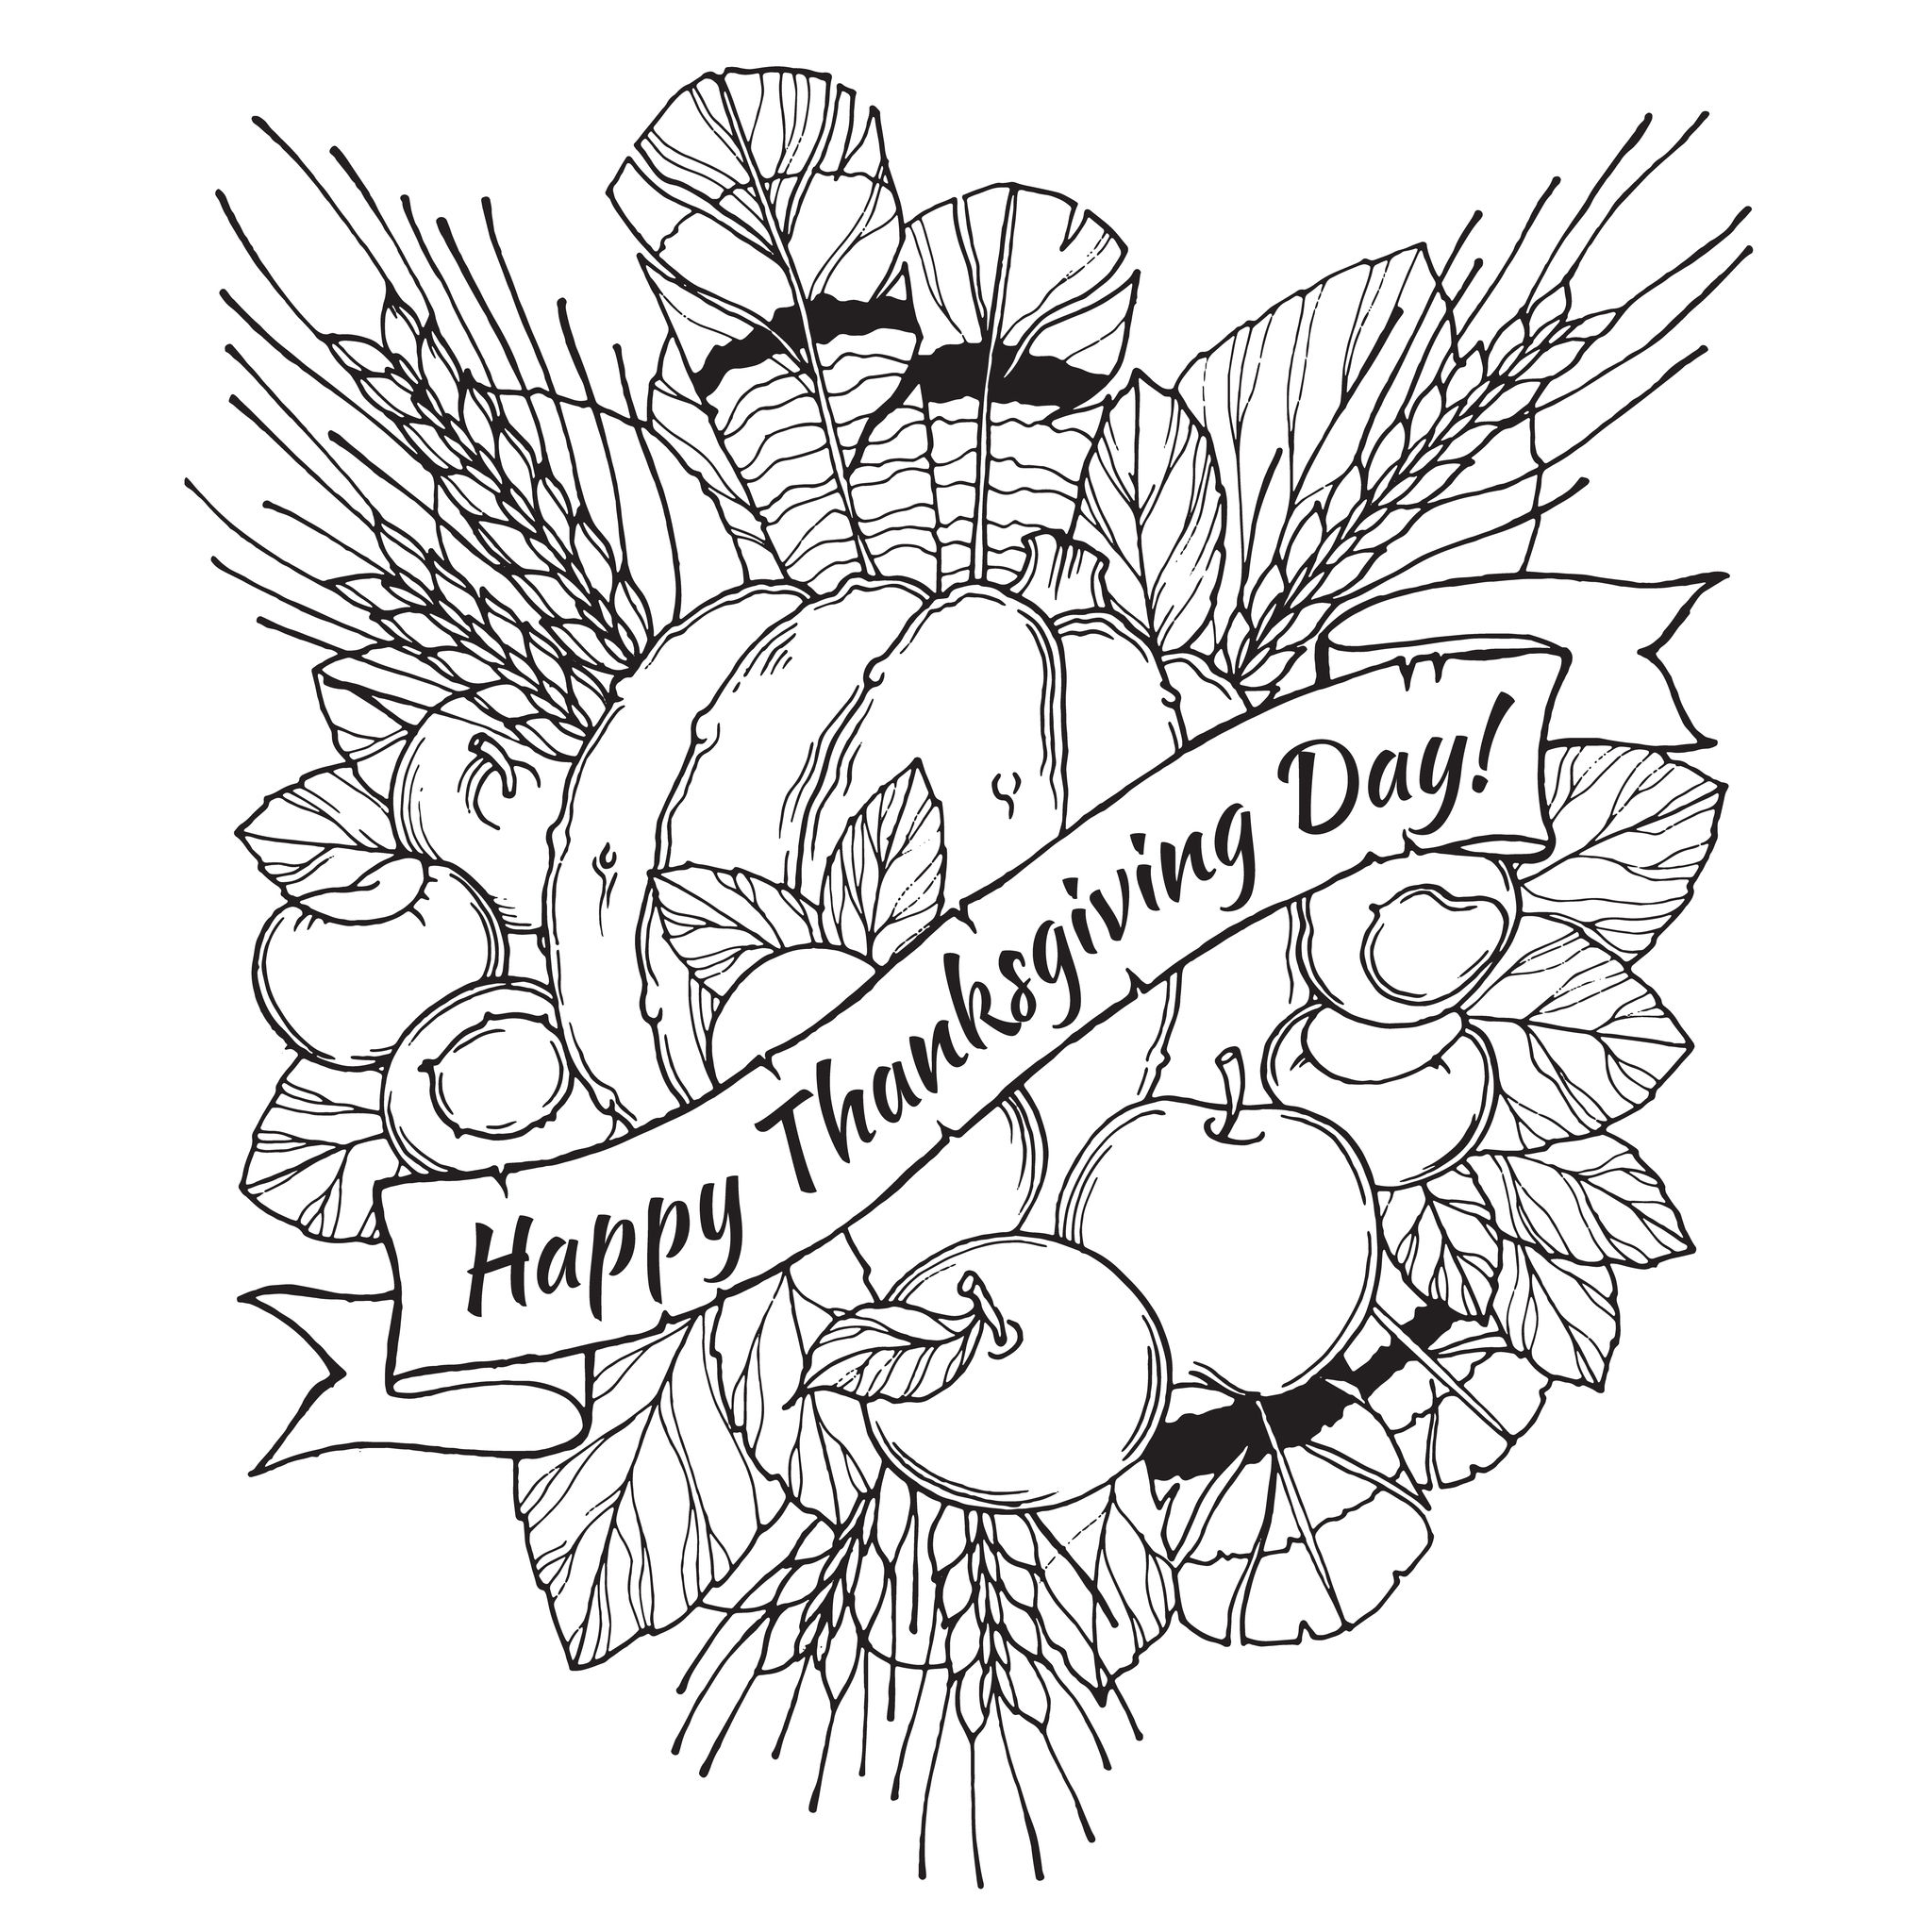 coloring pages for thanksgiving Thanksgiving Adult Coloring Pages coloring pages for thanksgiving